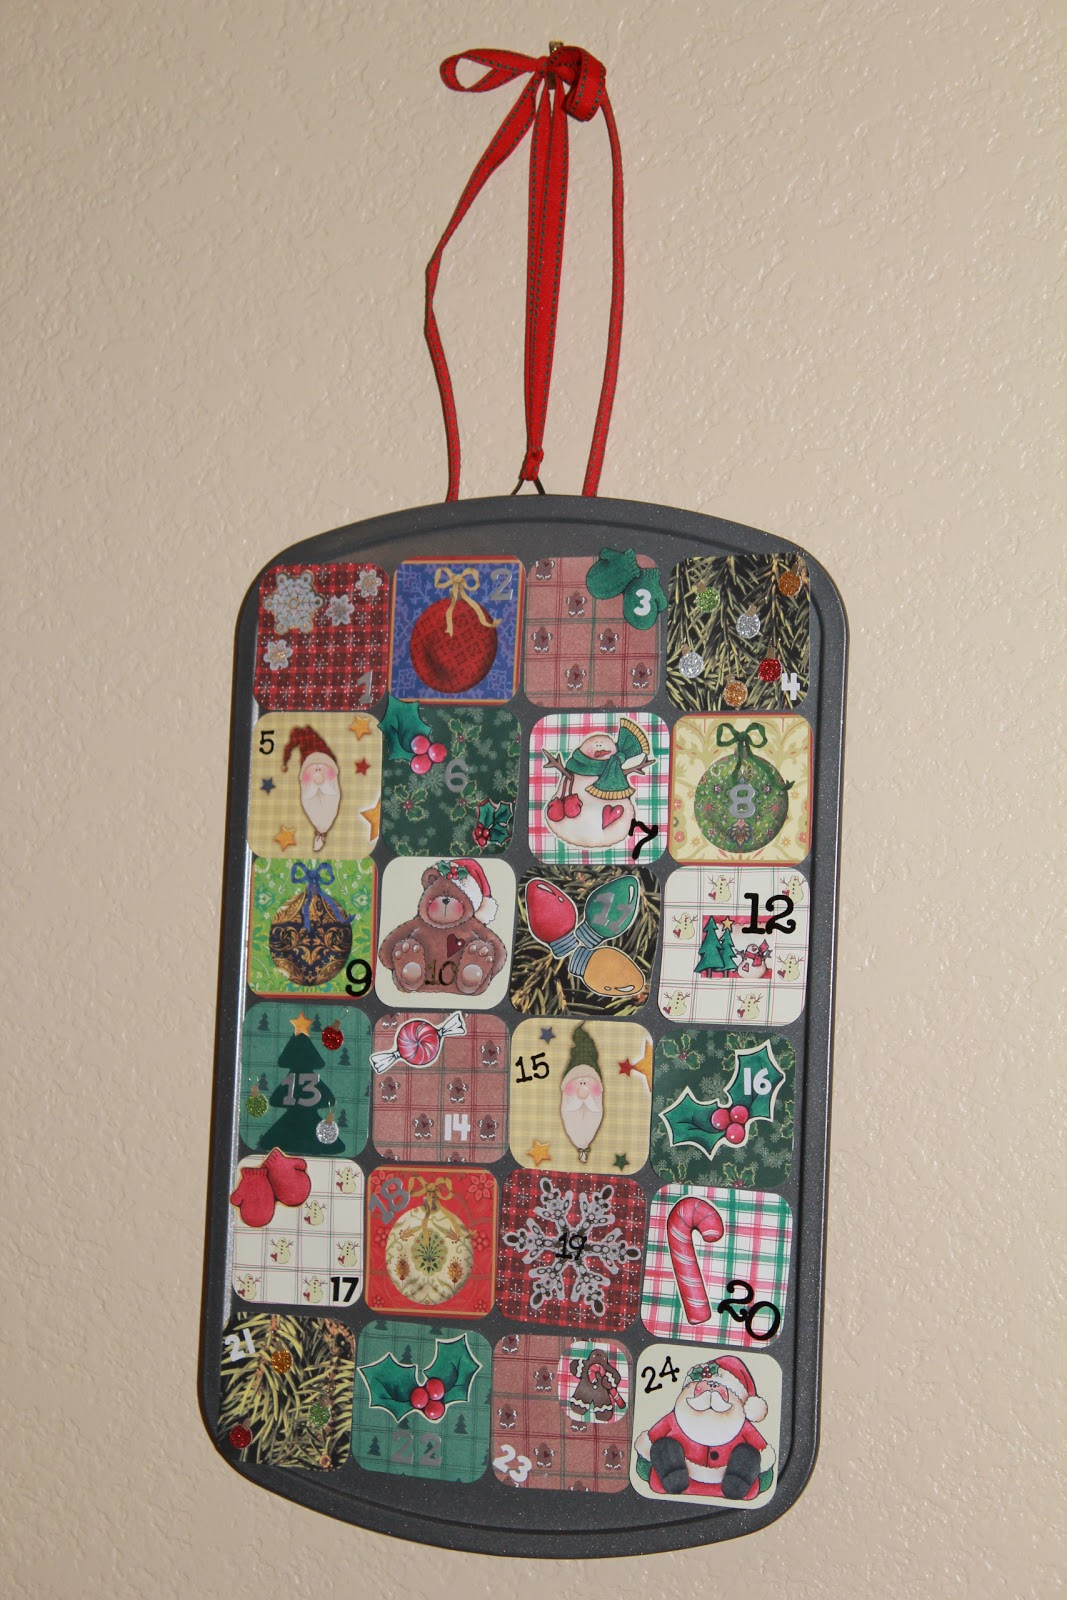 Diy Advent Calendar Muffin Tin : Mom endeavors muffin tin advent calendar